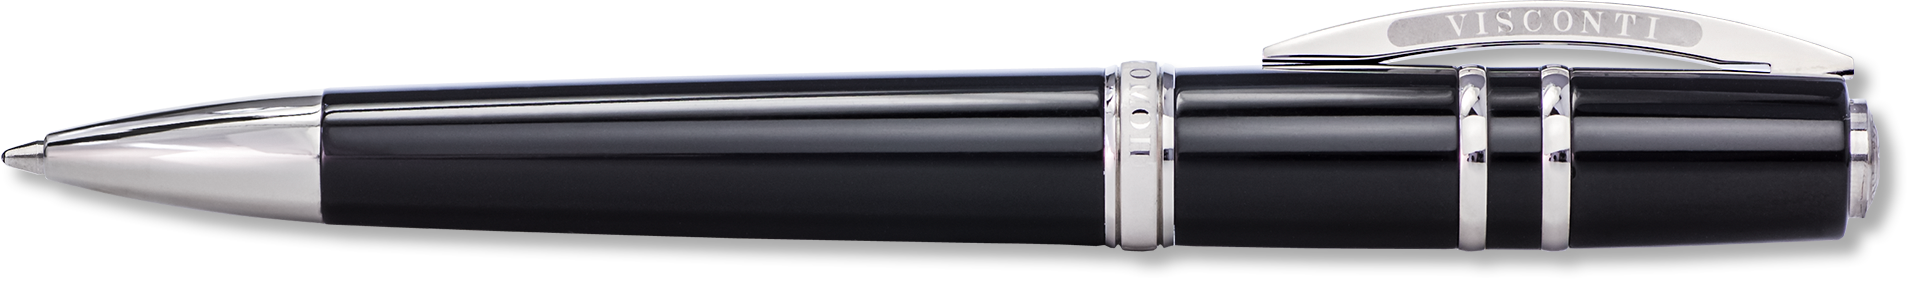 Visconti Elegance Black Polished Resin Ballpoint